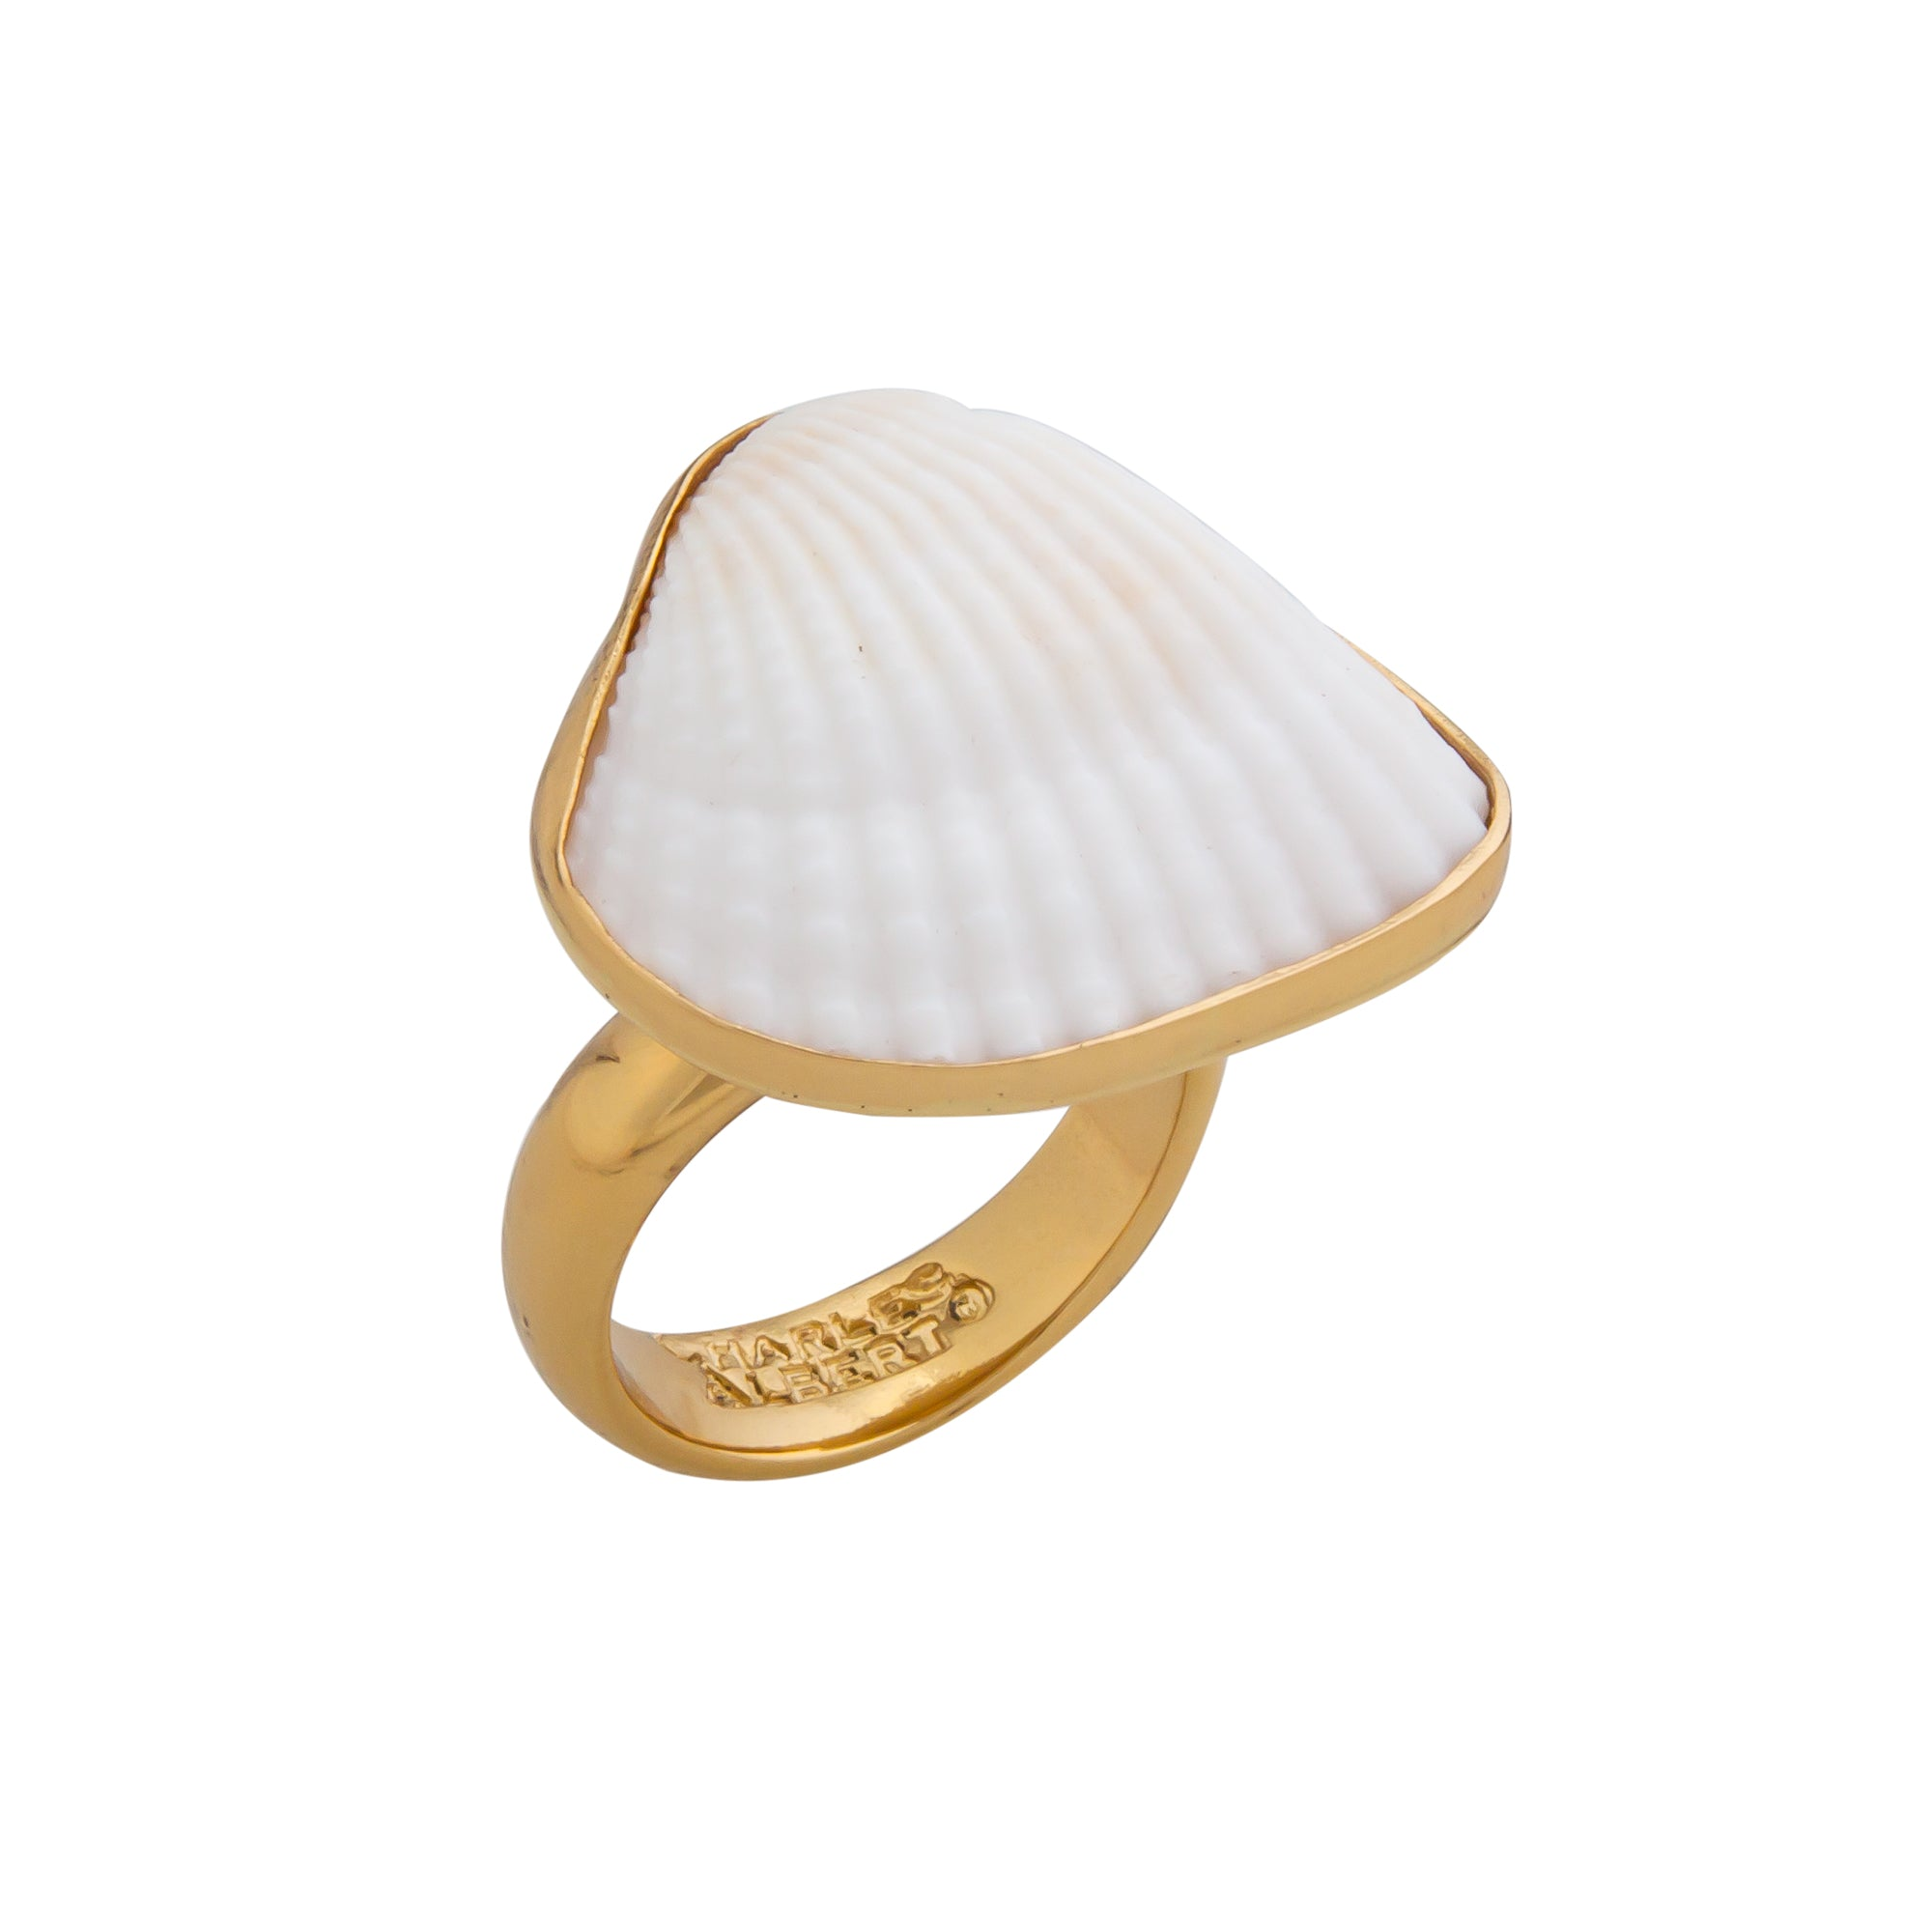 Alchemia Ark Shell Adjustable Ring | Charles Albert Jewelry